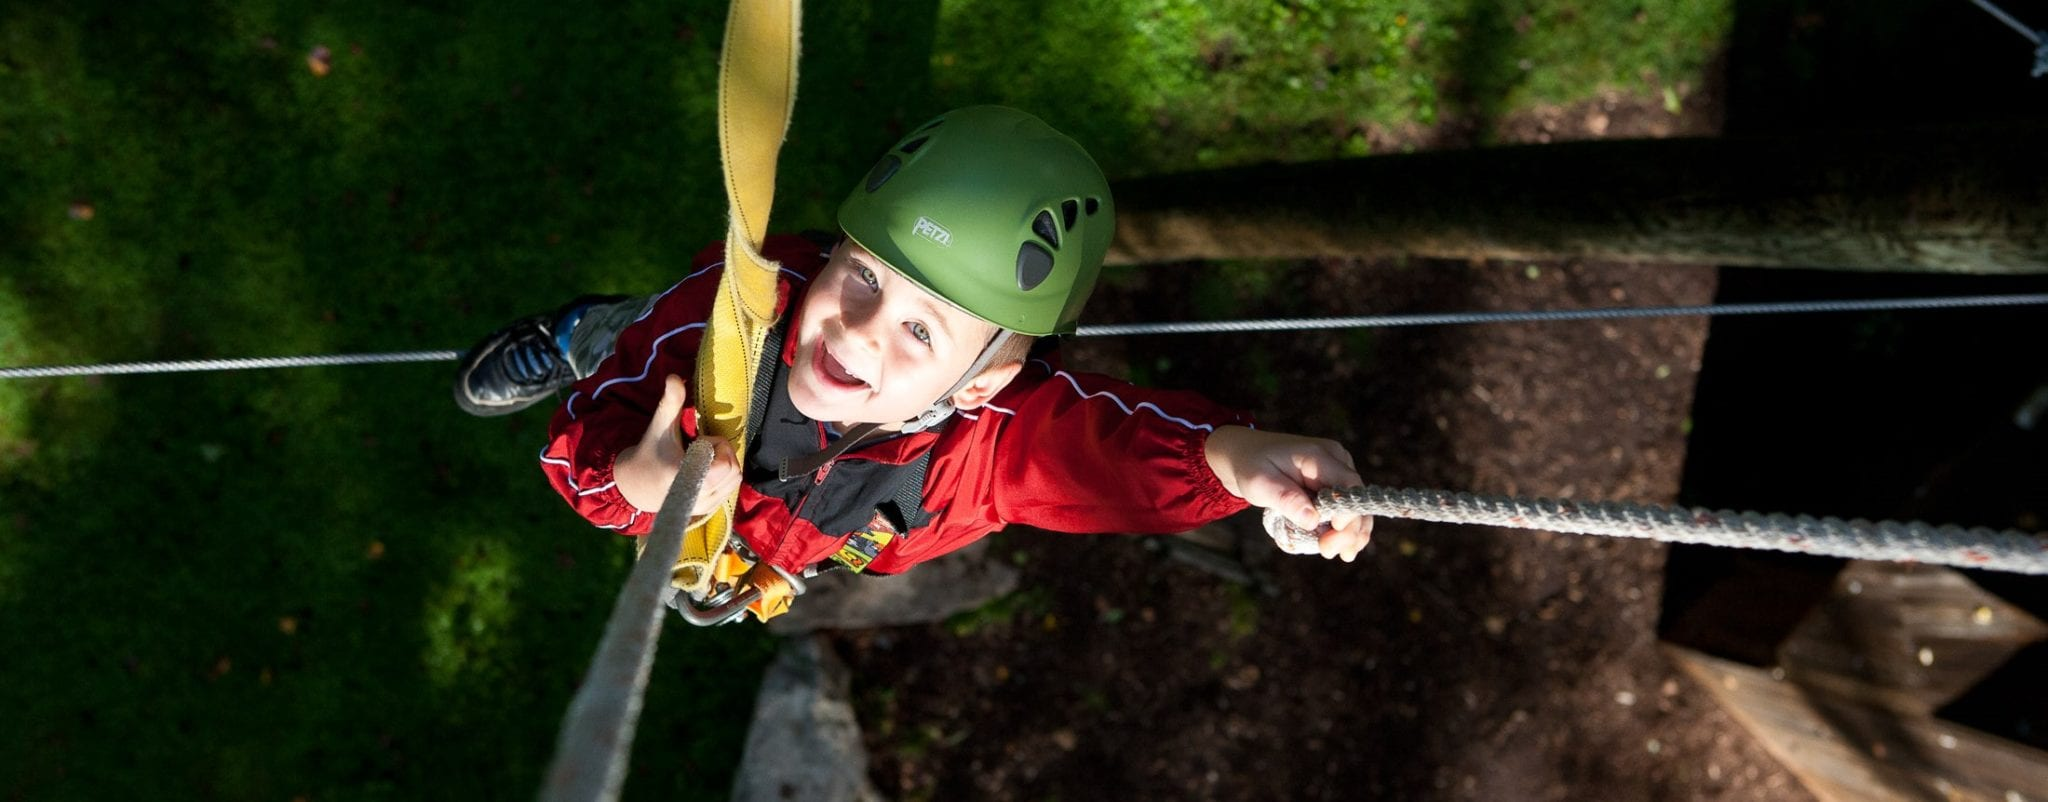 Kids-Zipline-Activity-Slider